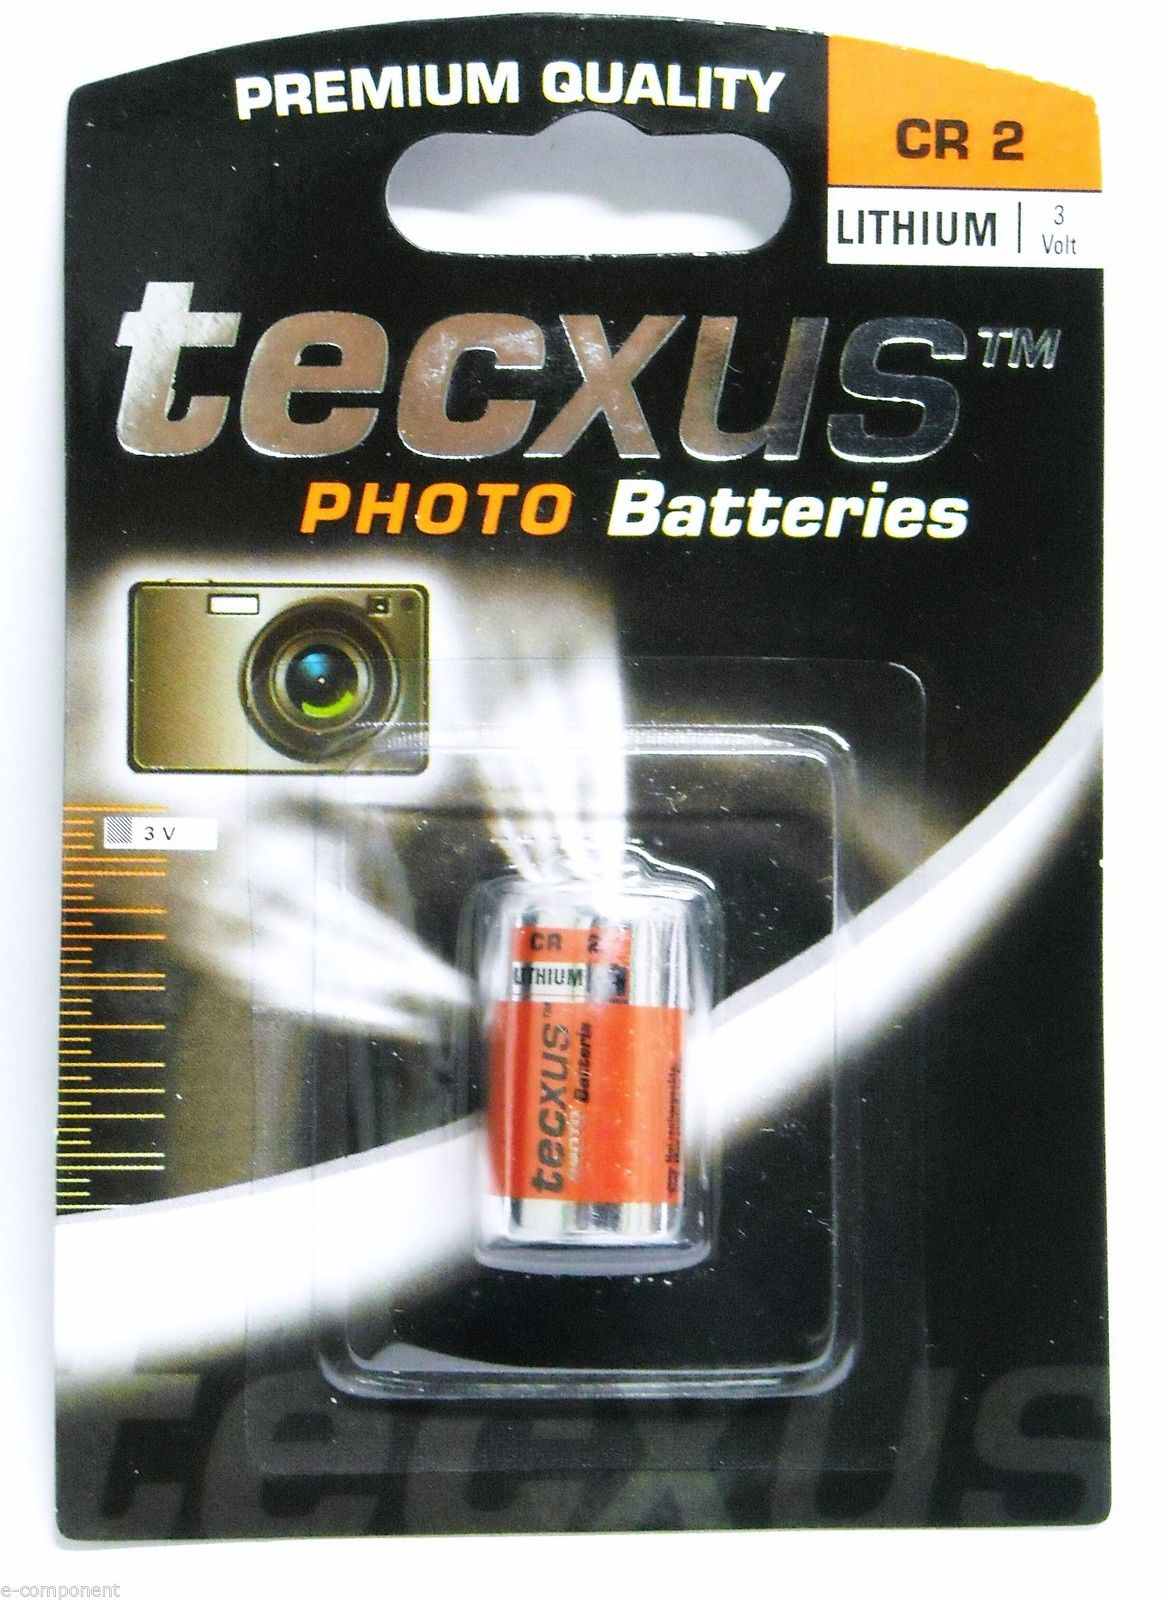 Batteria 3V AL LITIO (3V Battery LITHIUM) CR2 per fotocamera ref